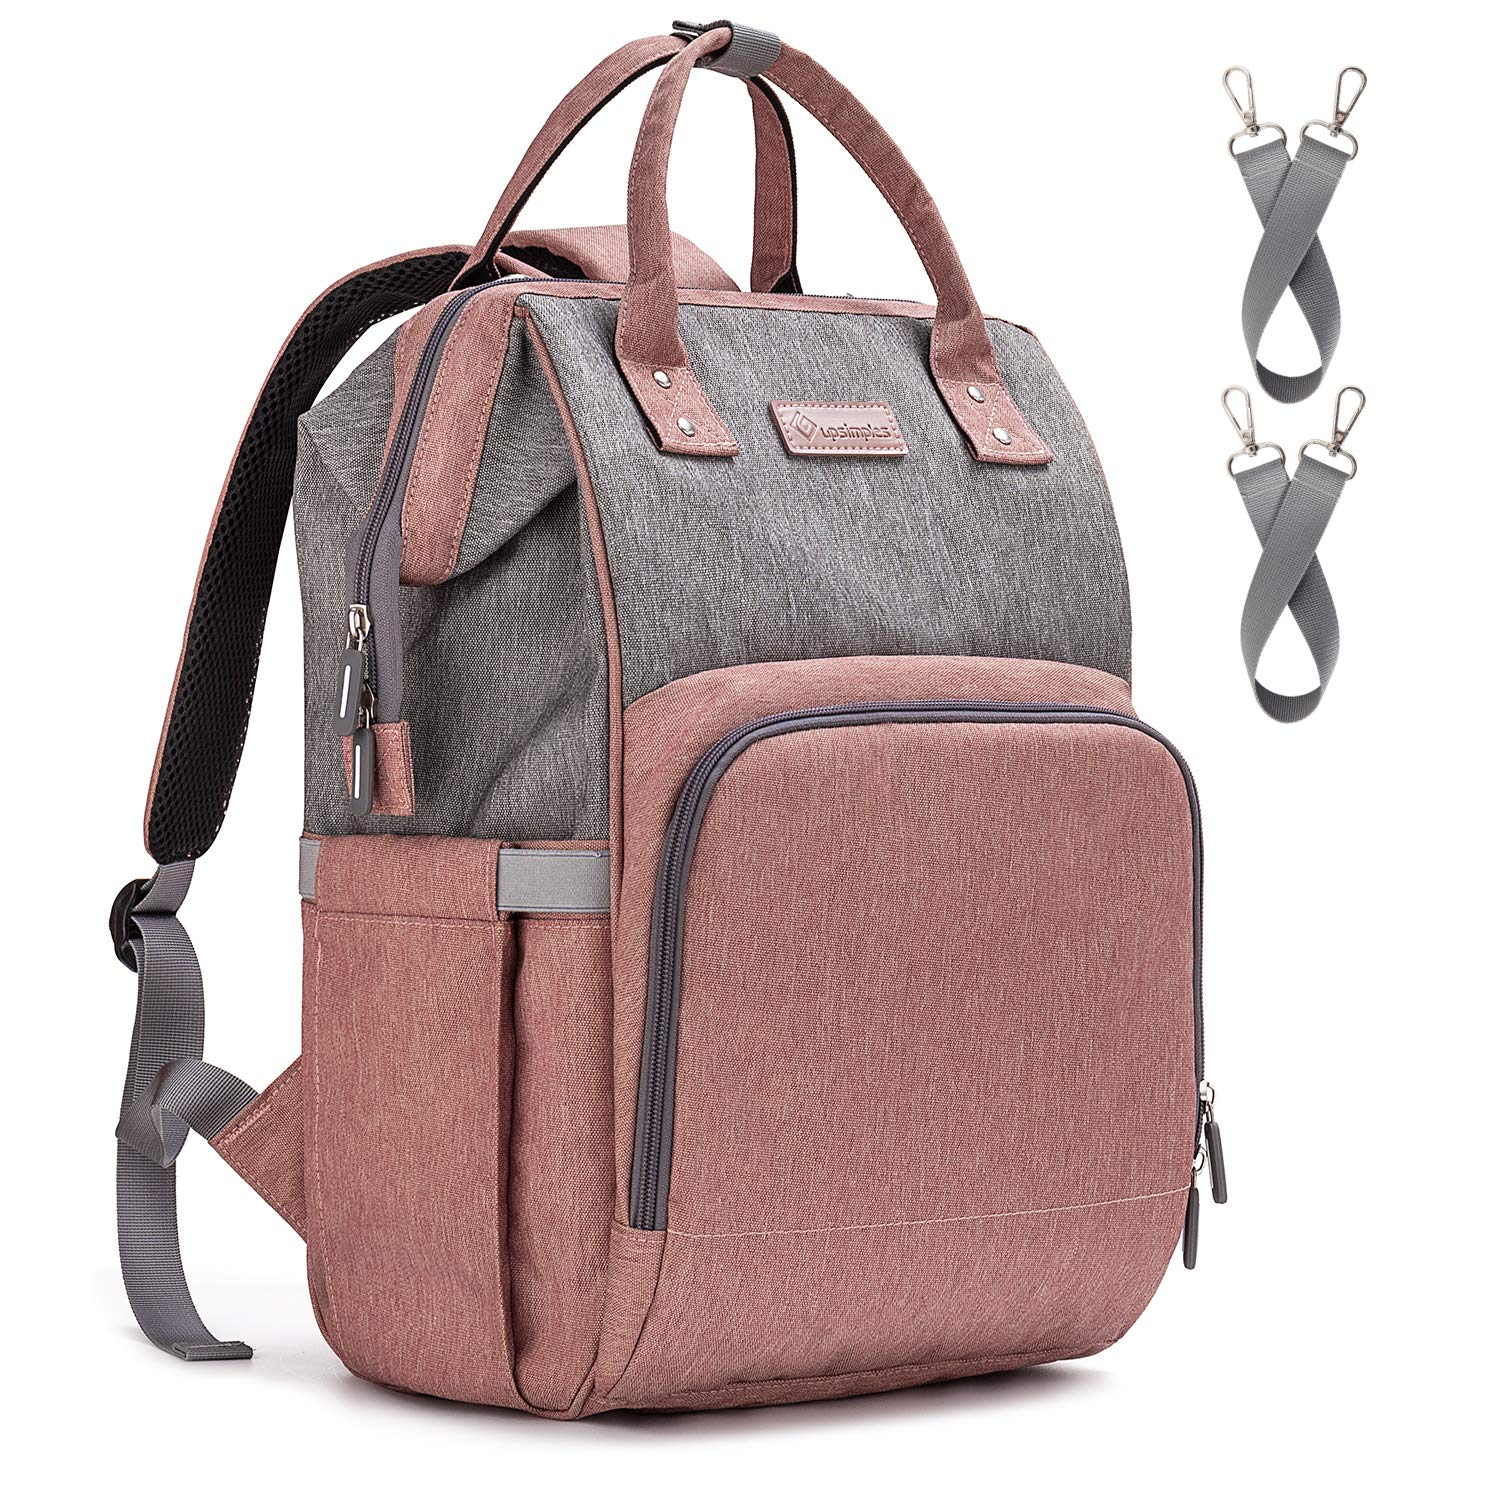 Diaper Bag Backpack Nappy Bag Upsimples Baby Bags for Mom Maternity Diaper Bag with USB Charging Port Stroller Straps Thermal Pockets Wide Shoulder Straps Water Resistant  Pink by upsimples (Image #1)